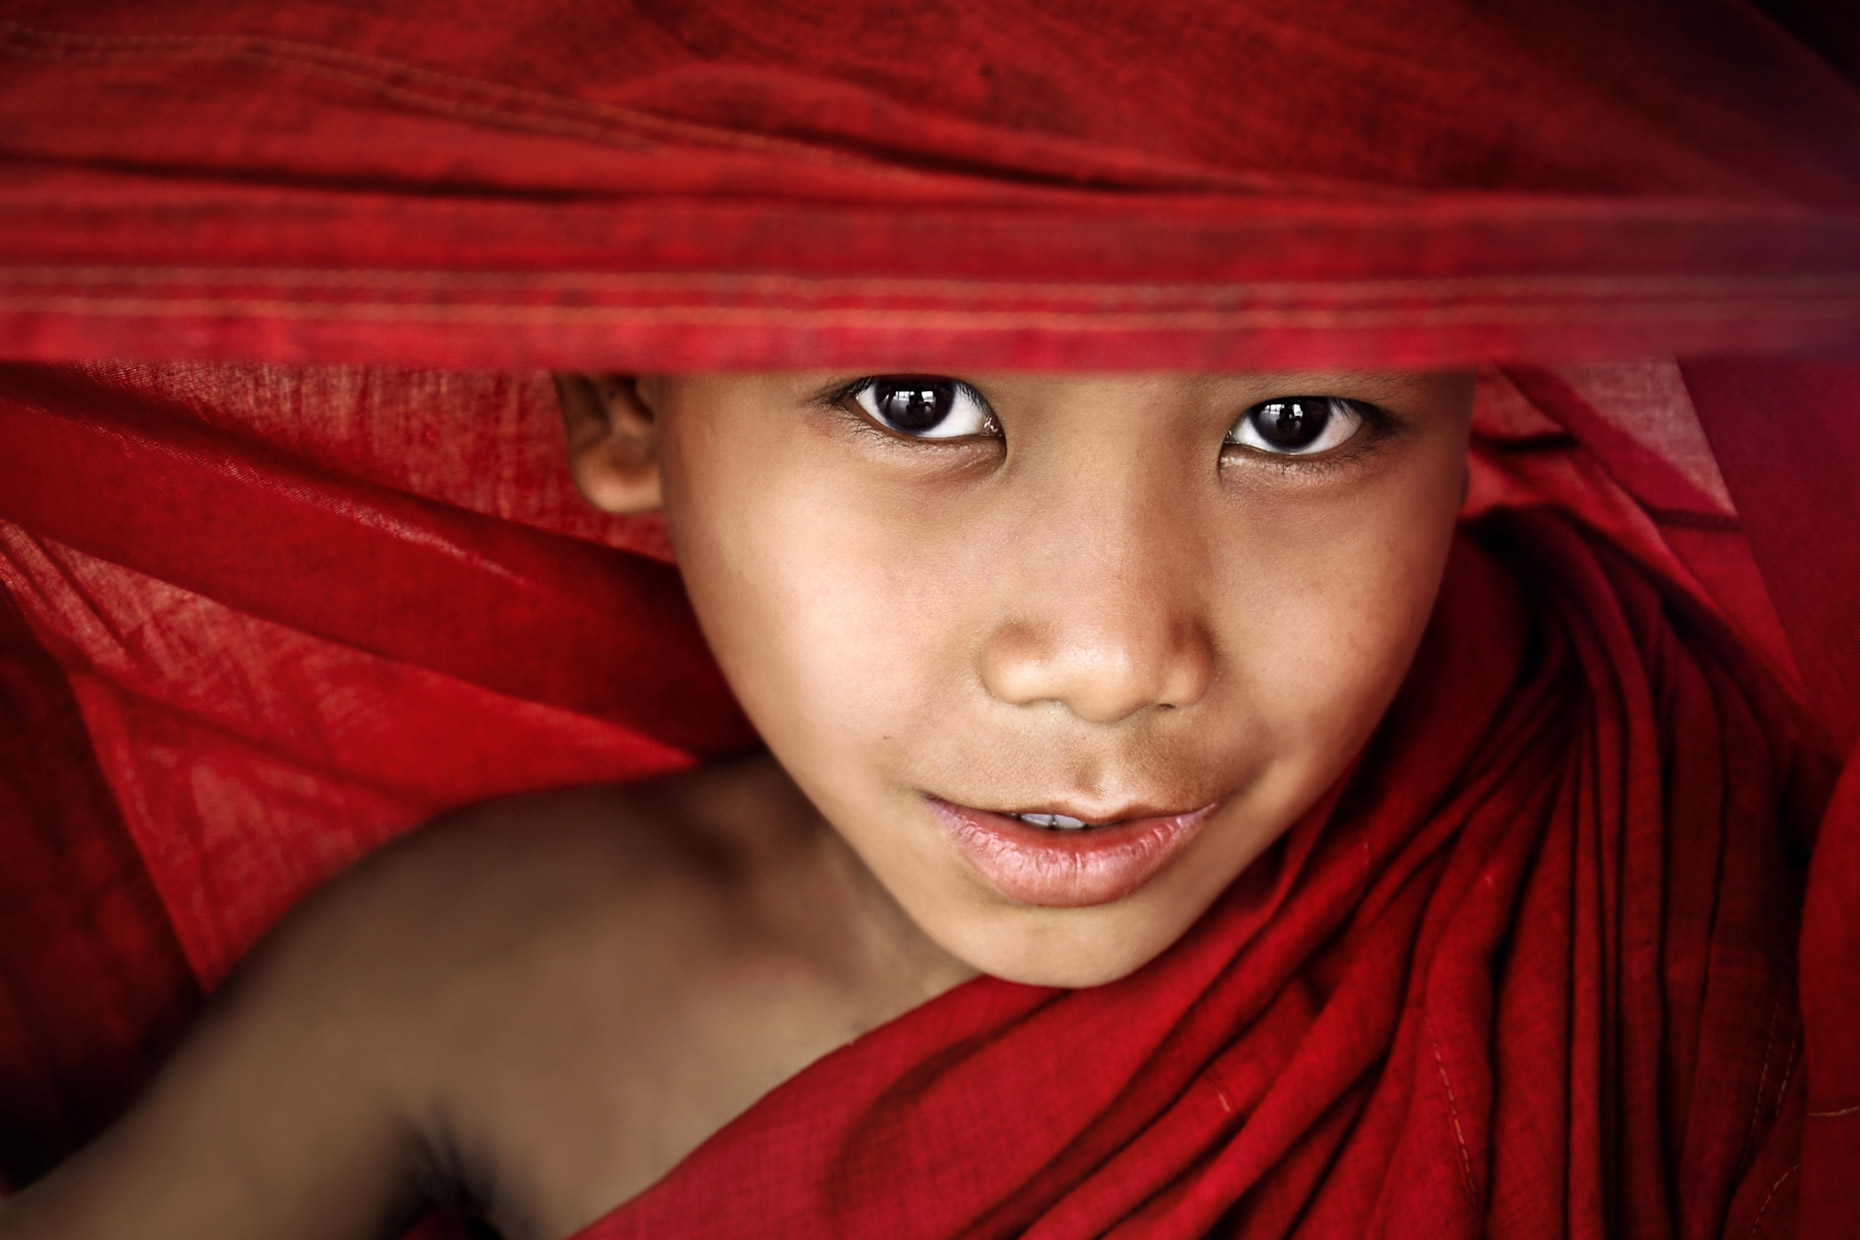 Burma monk Peeking-Through-the-Robes14.jpg